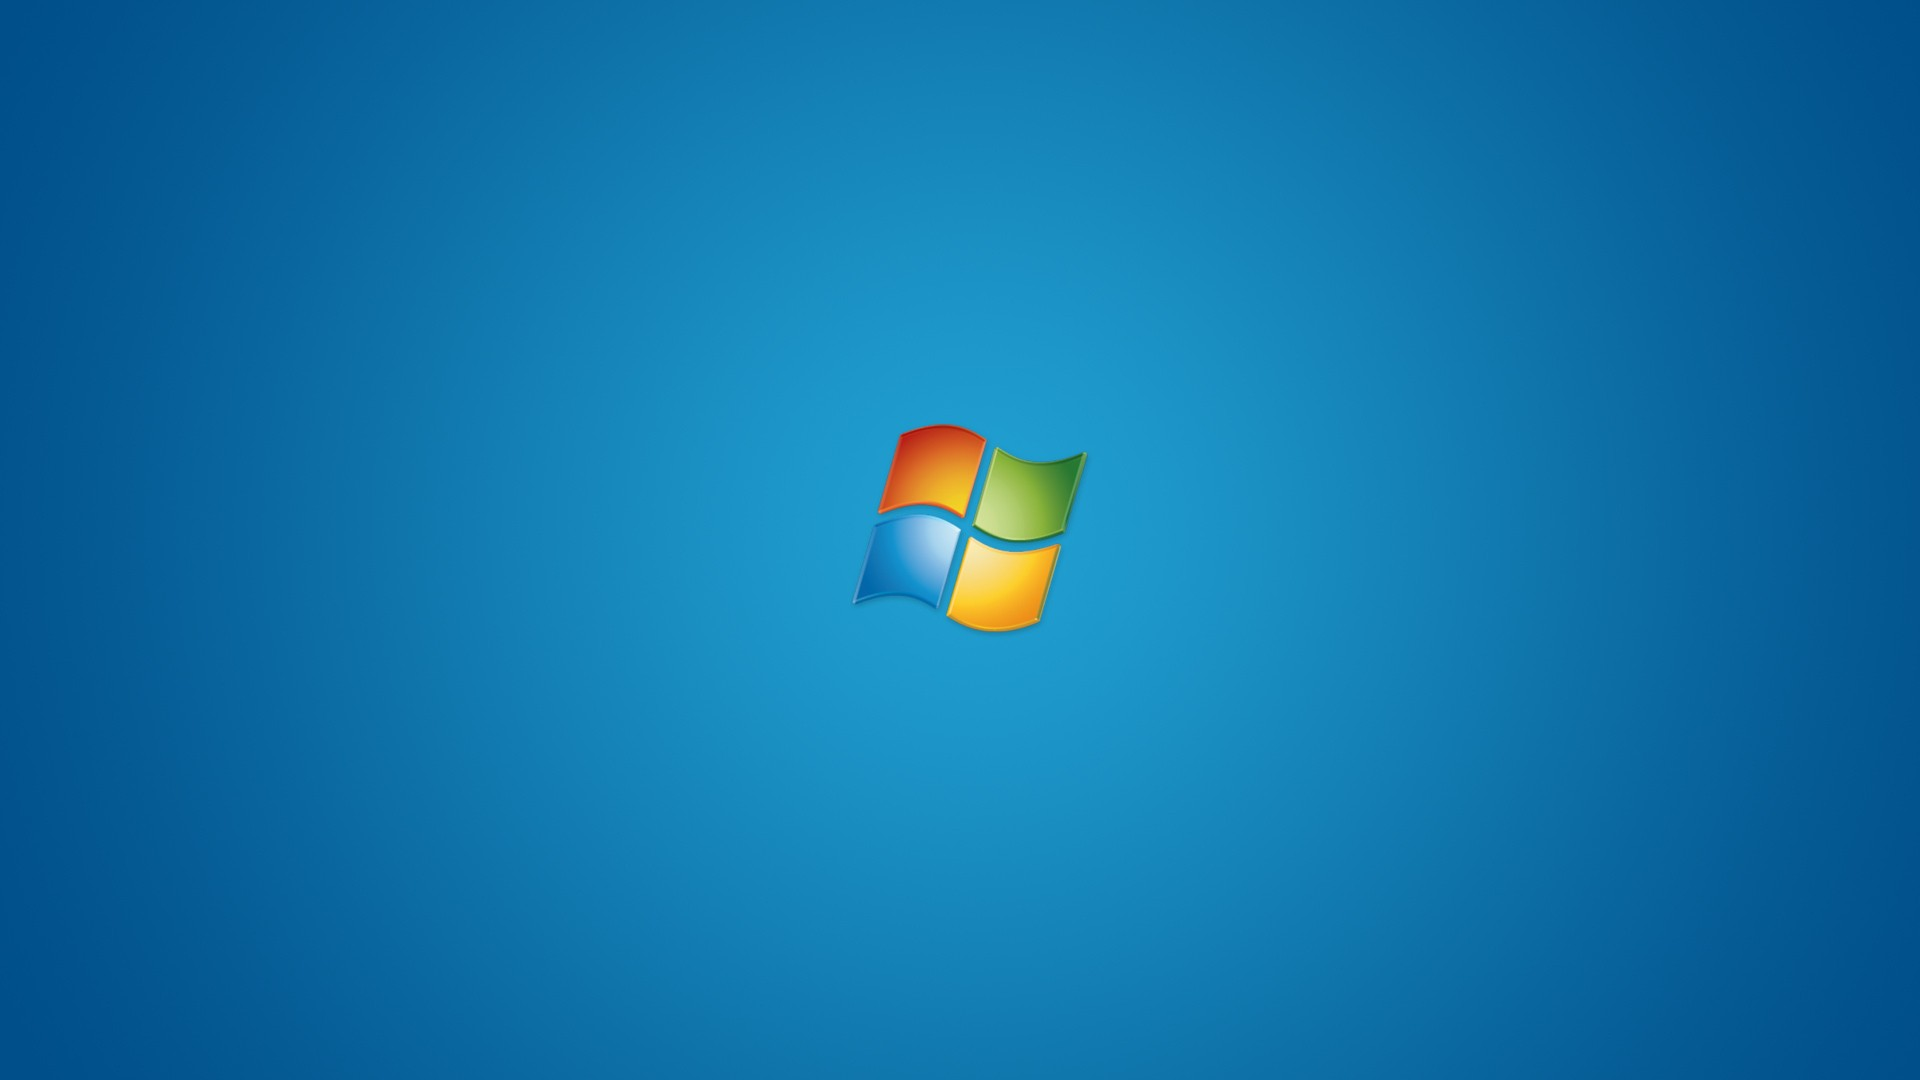 microsoft windows wallpapers by gifteddeviant - photo #9